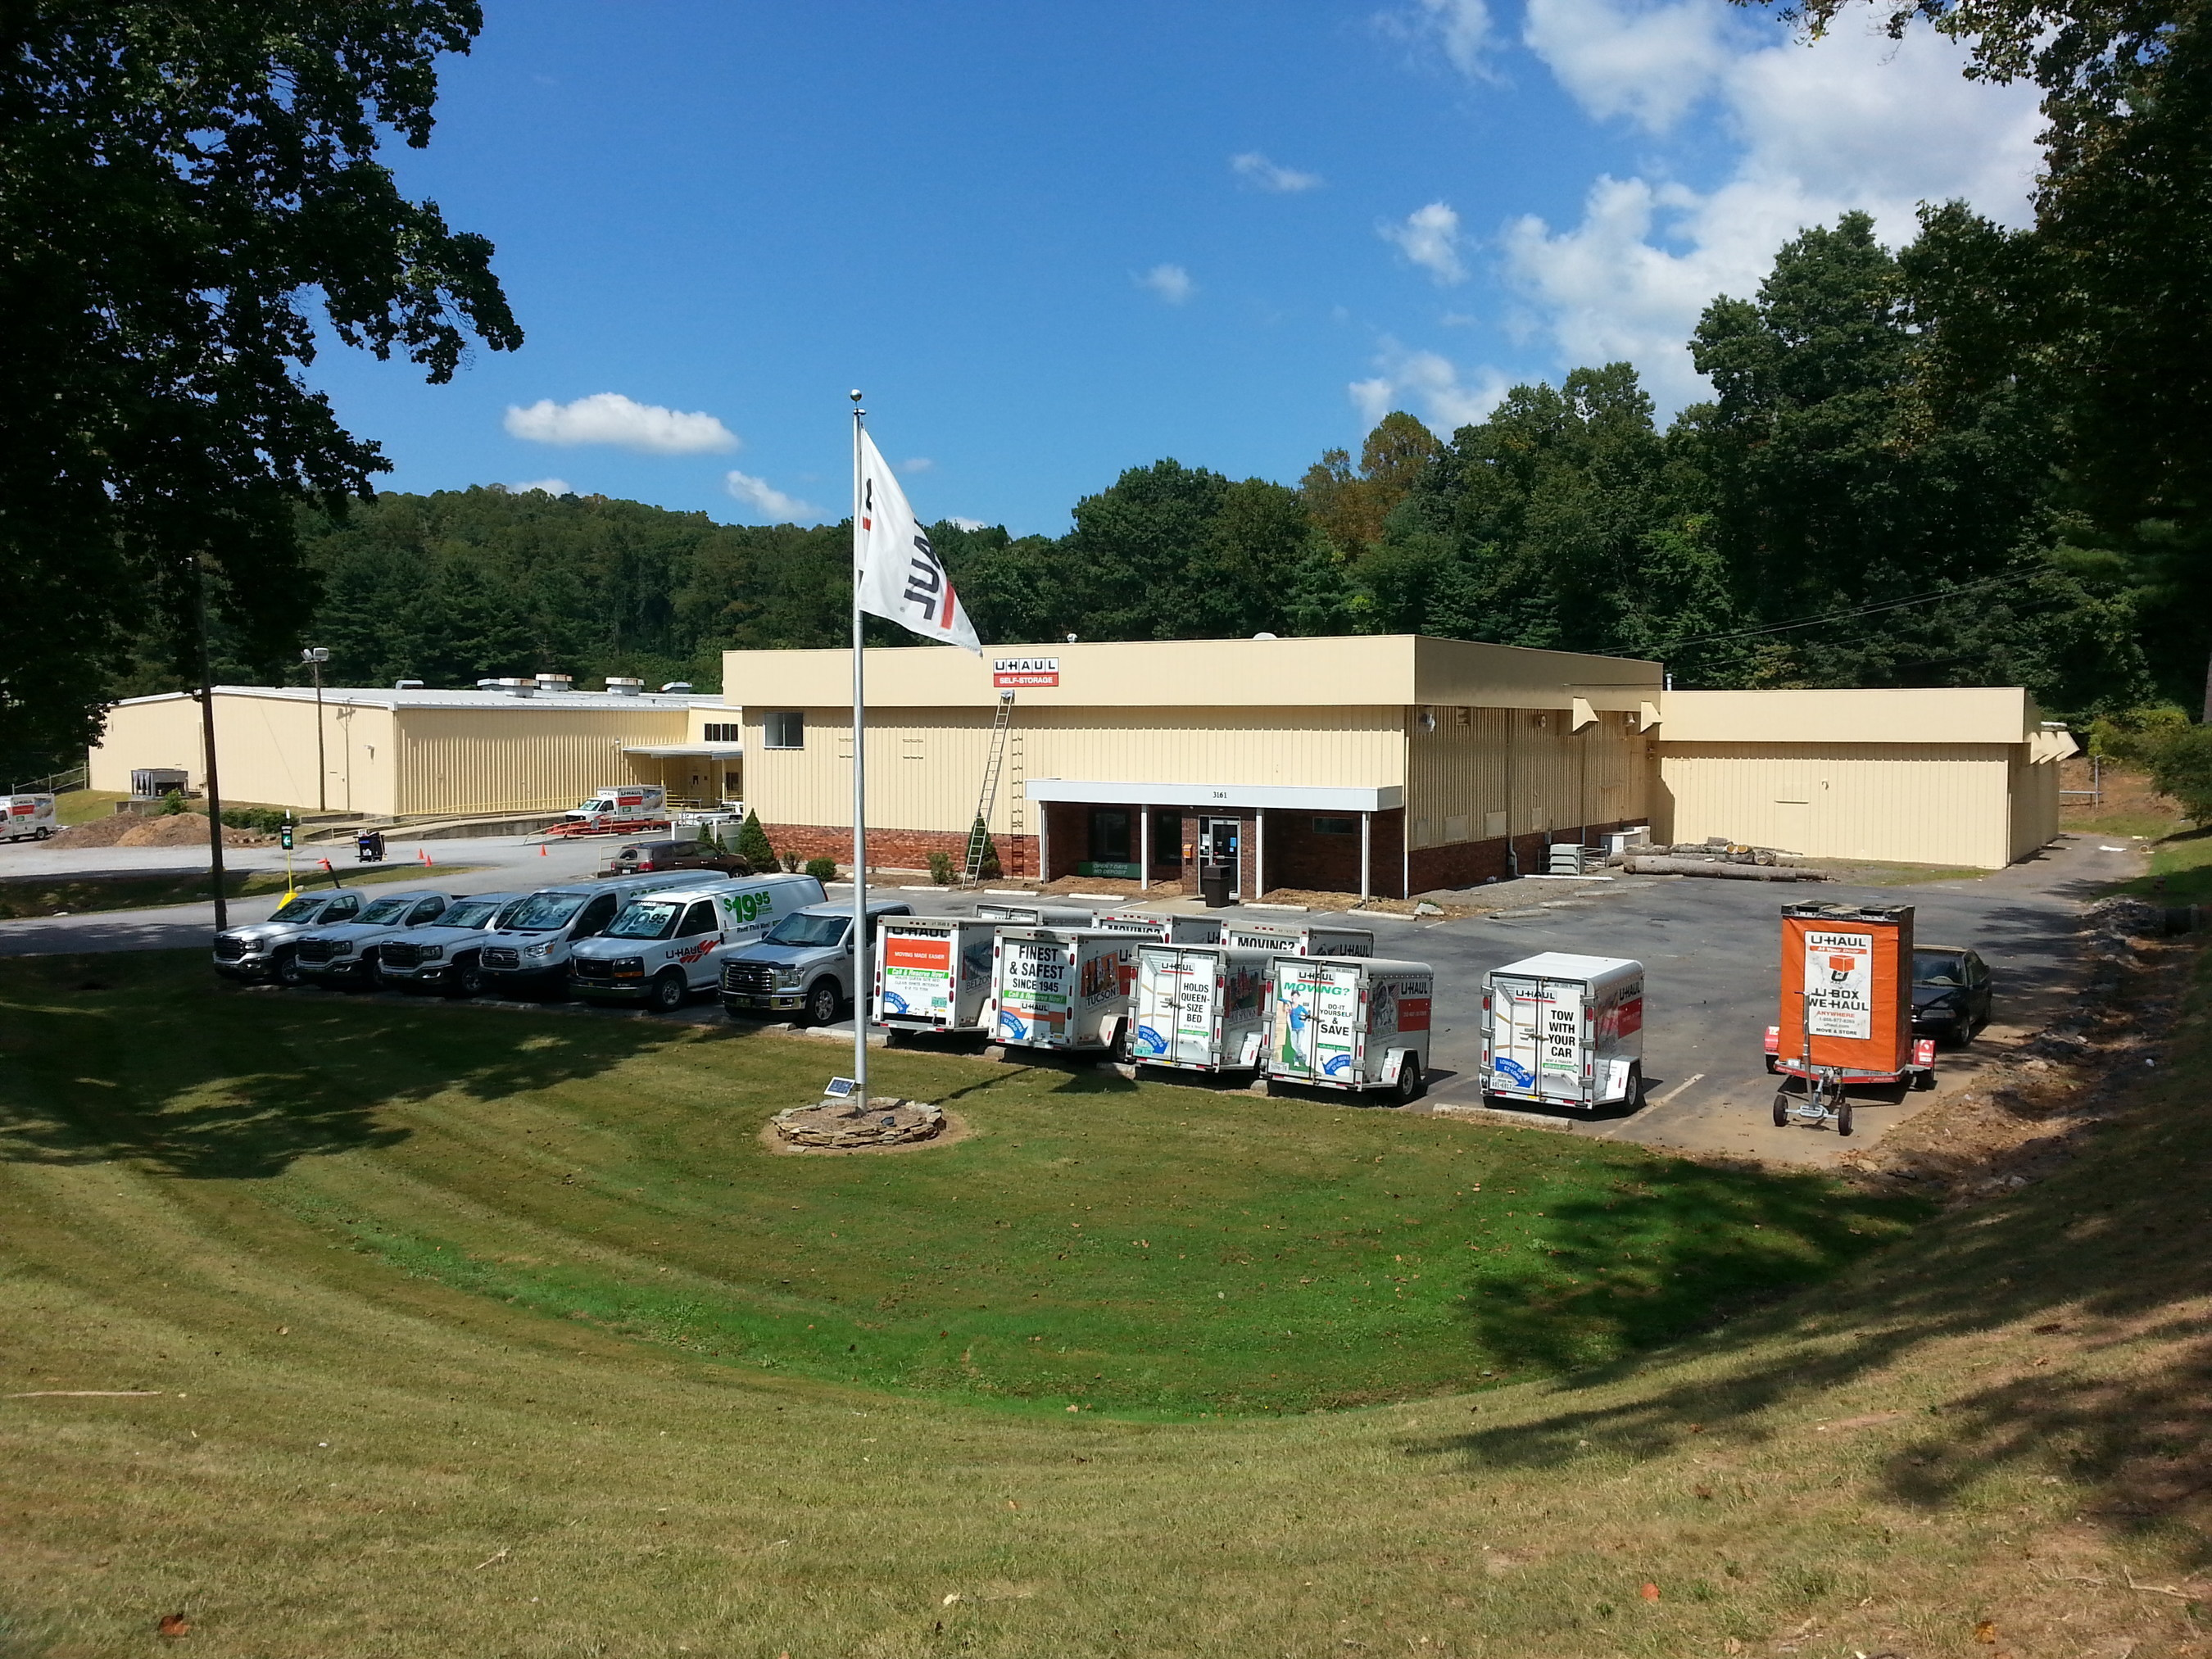 U-Haul Moving & Storage of South Asheville at 3161 Sweeten Creek Road is now offering truck and trailer rentals, moving supplies, towing equipment and professional hitch installation, and U-Box portable moving and self-storage containers.